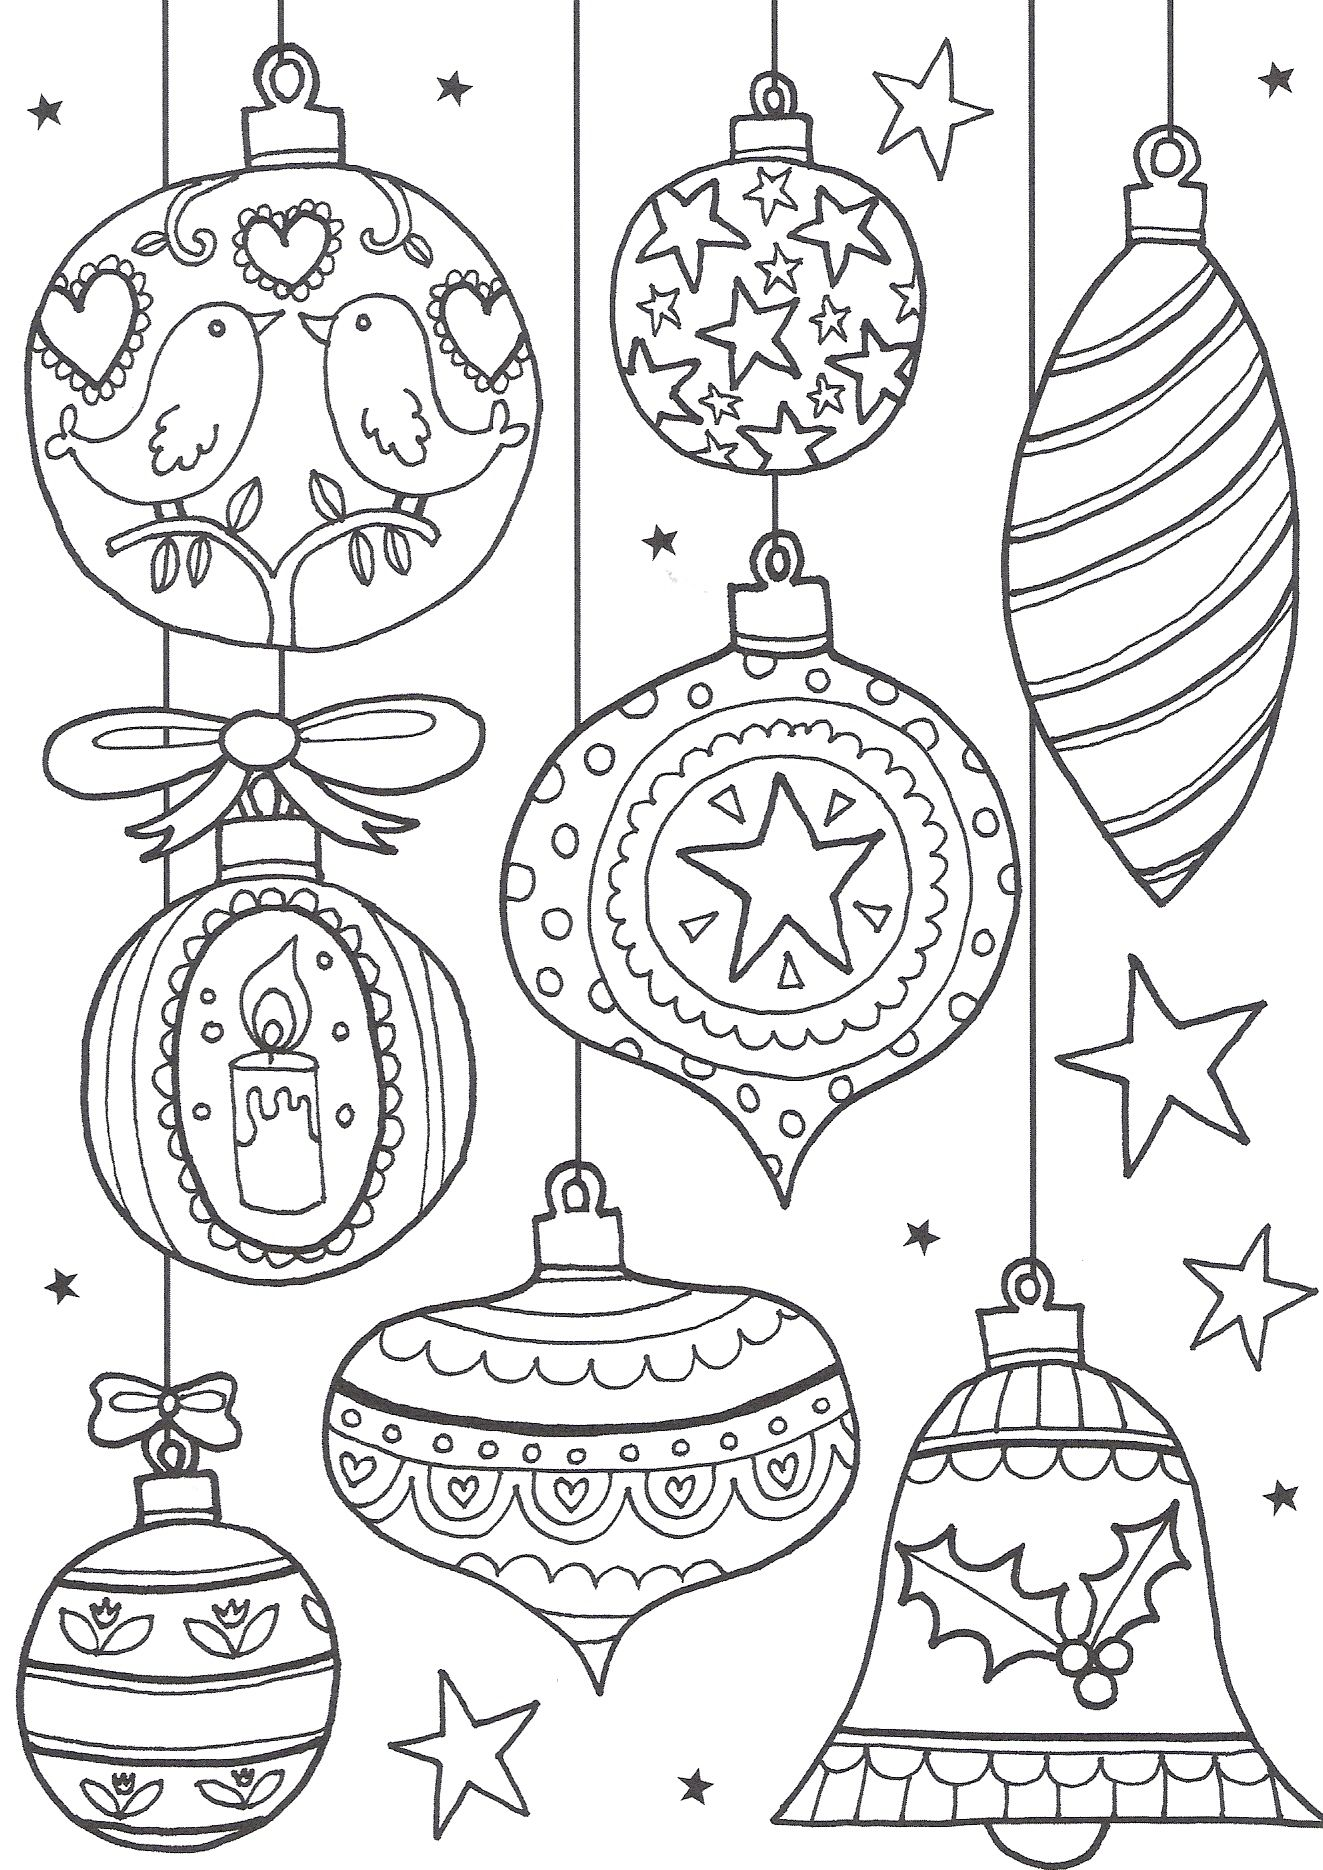 Christmas Coloring For Adults With Free Colouring Pages The Ultimate Roundup